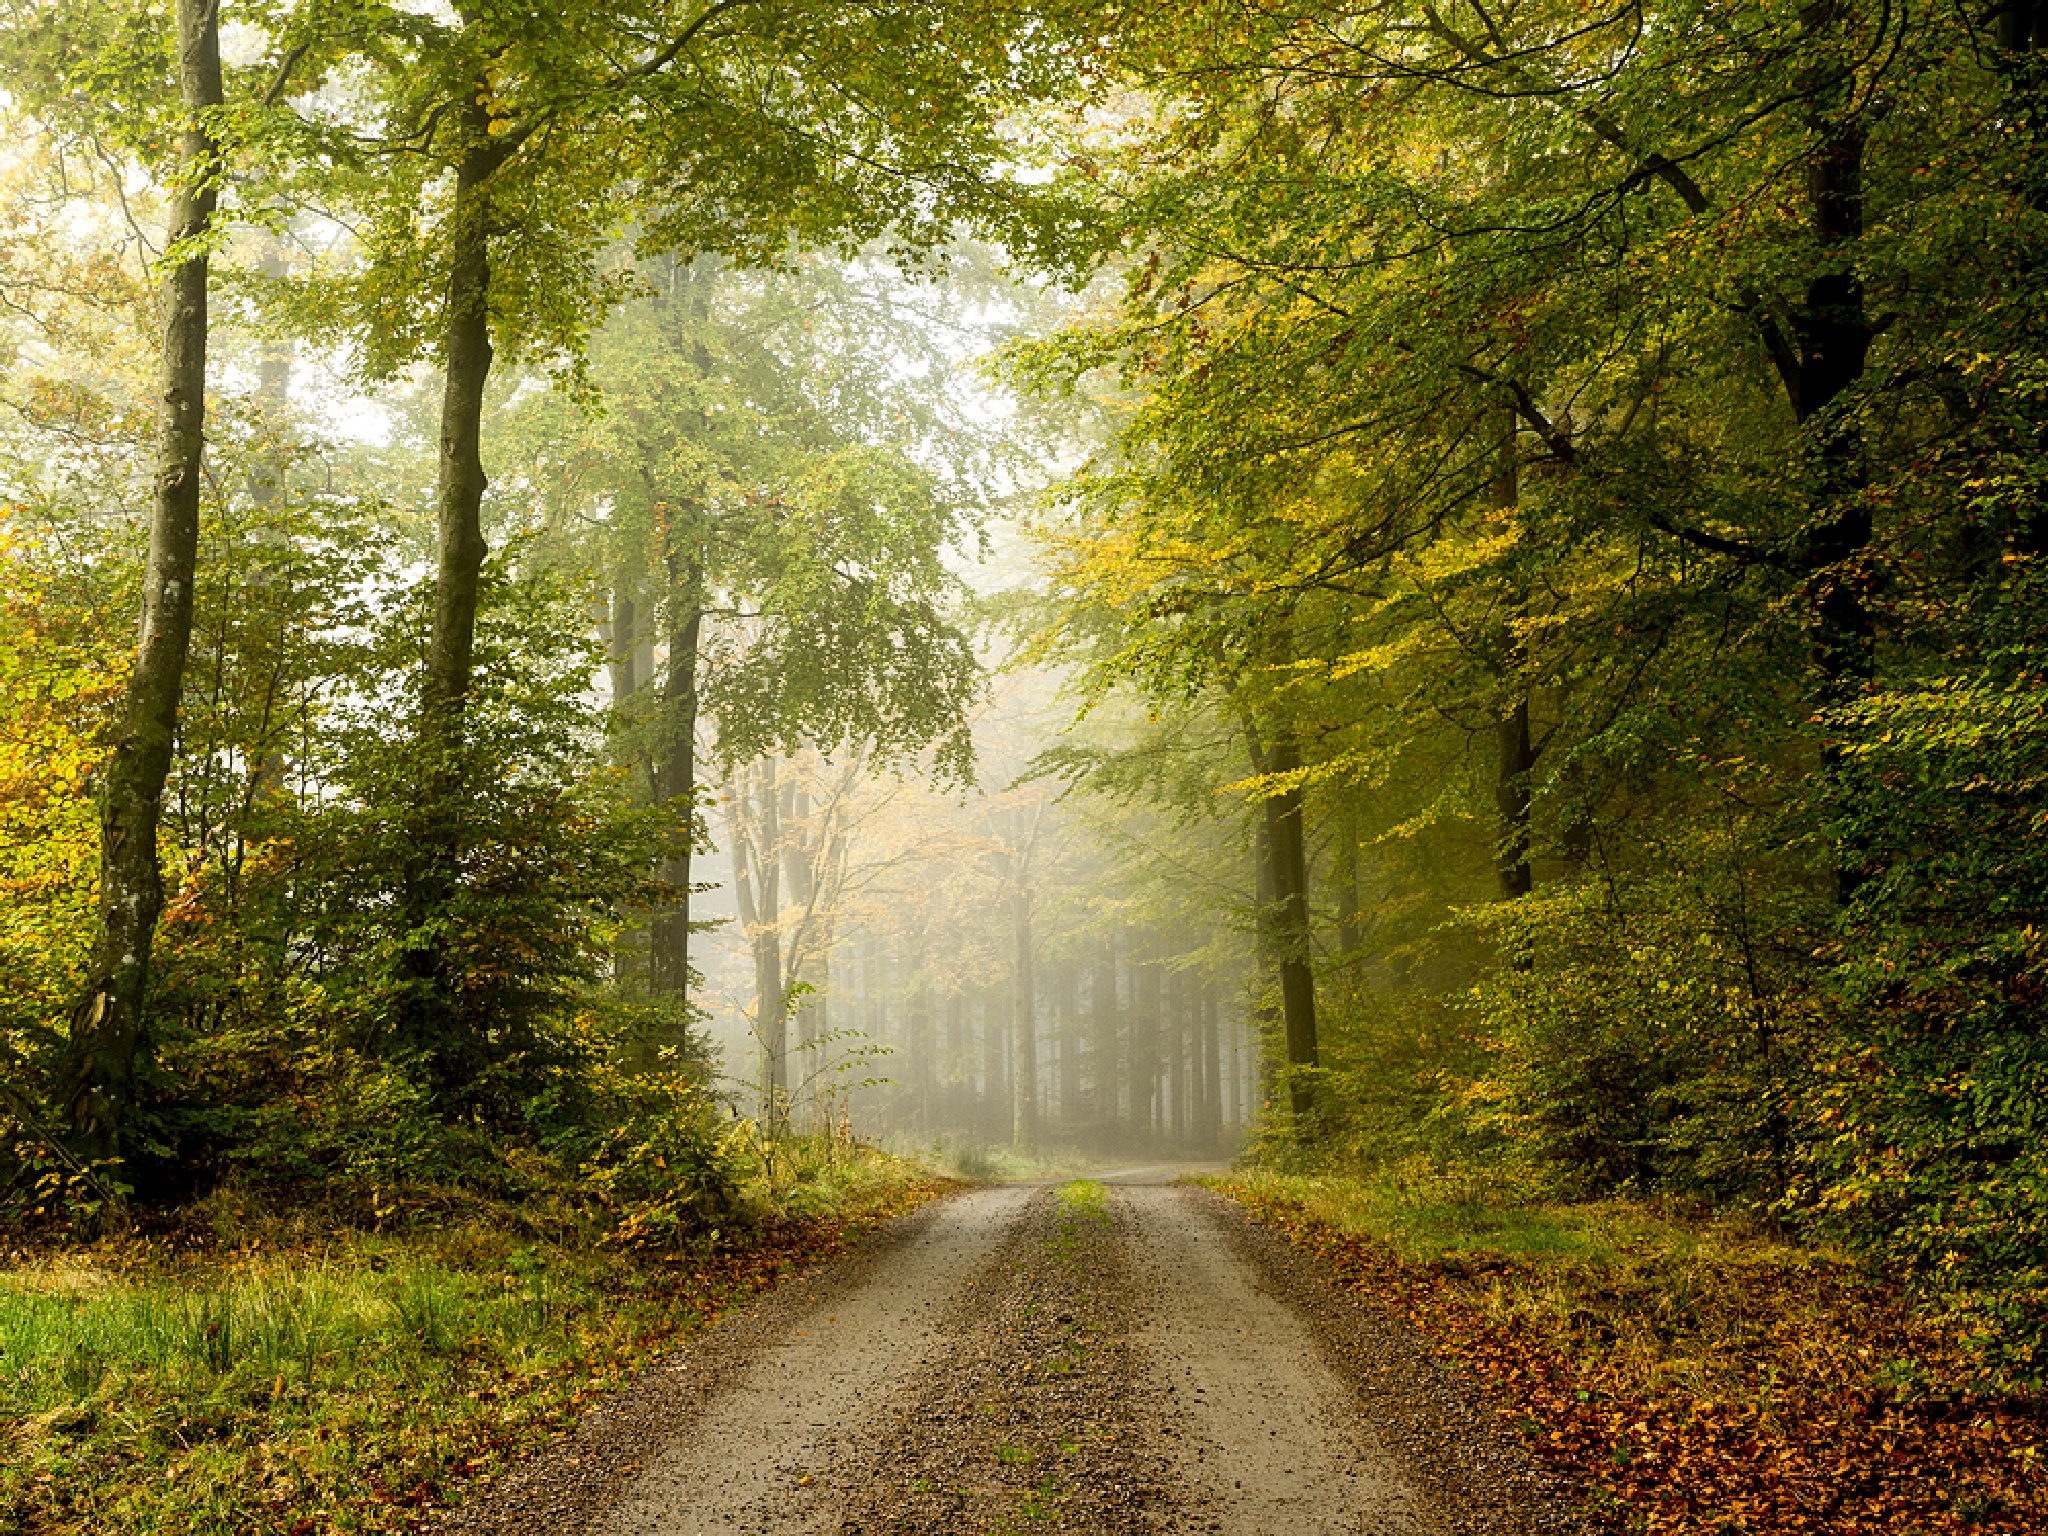 The road by Peter Samuelsson